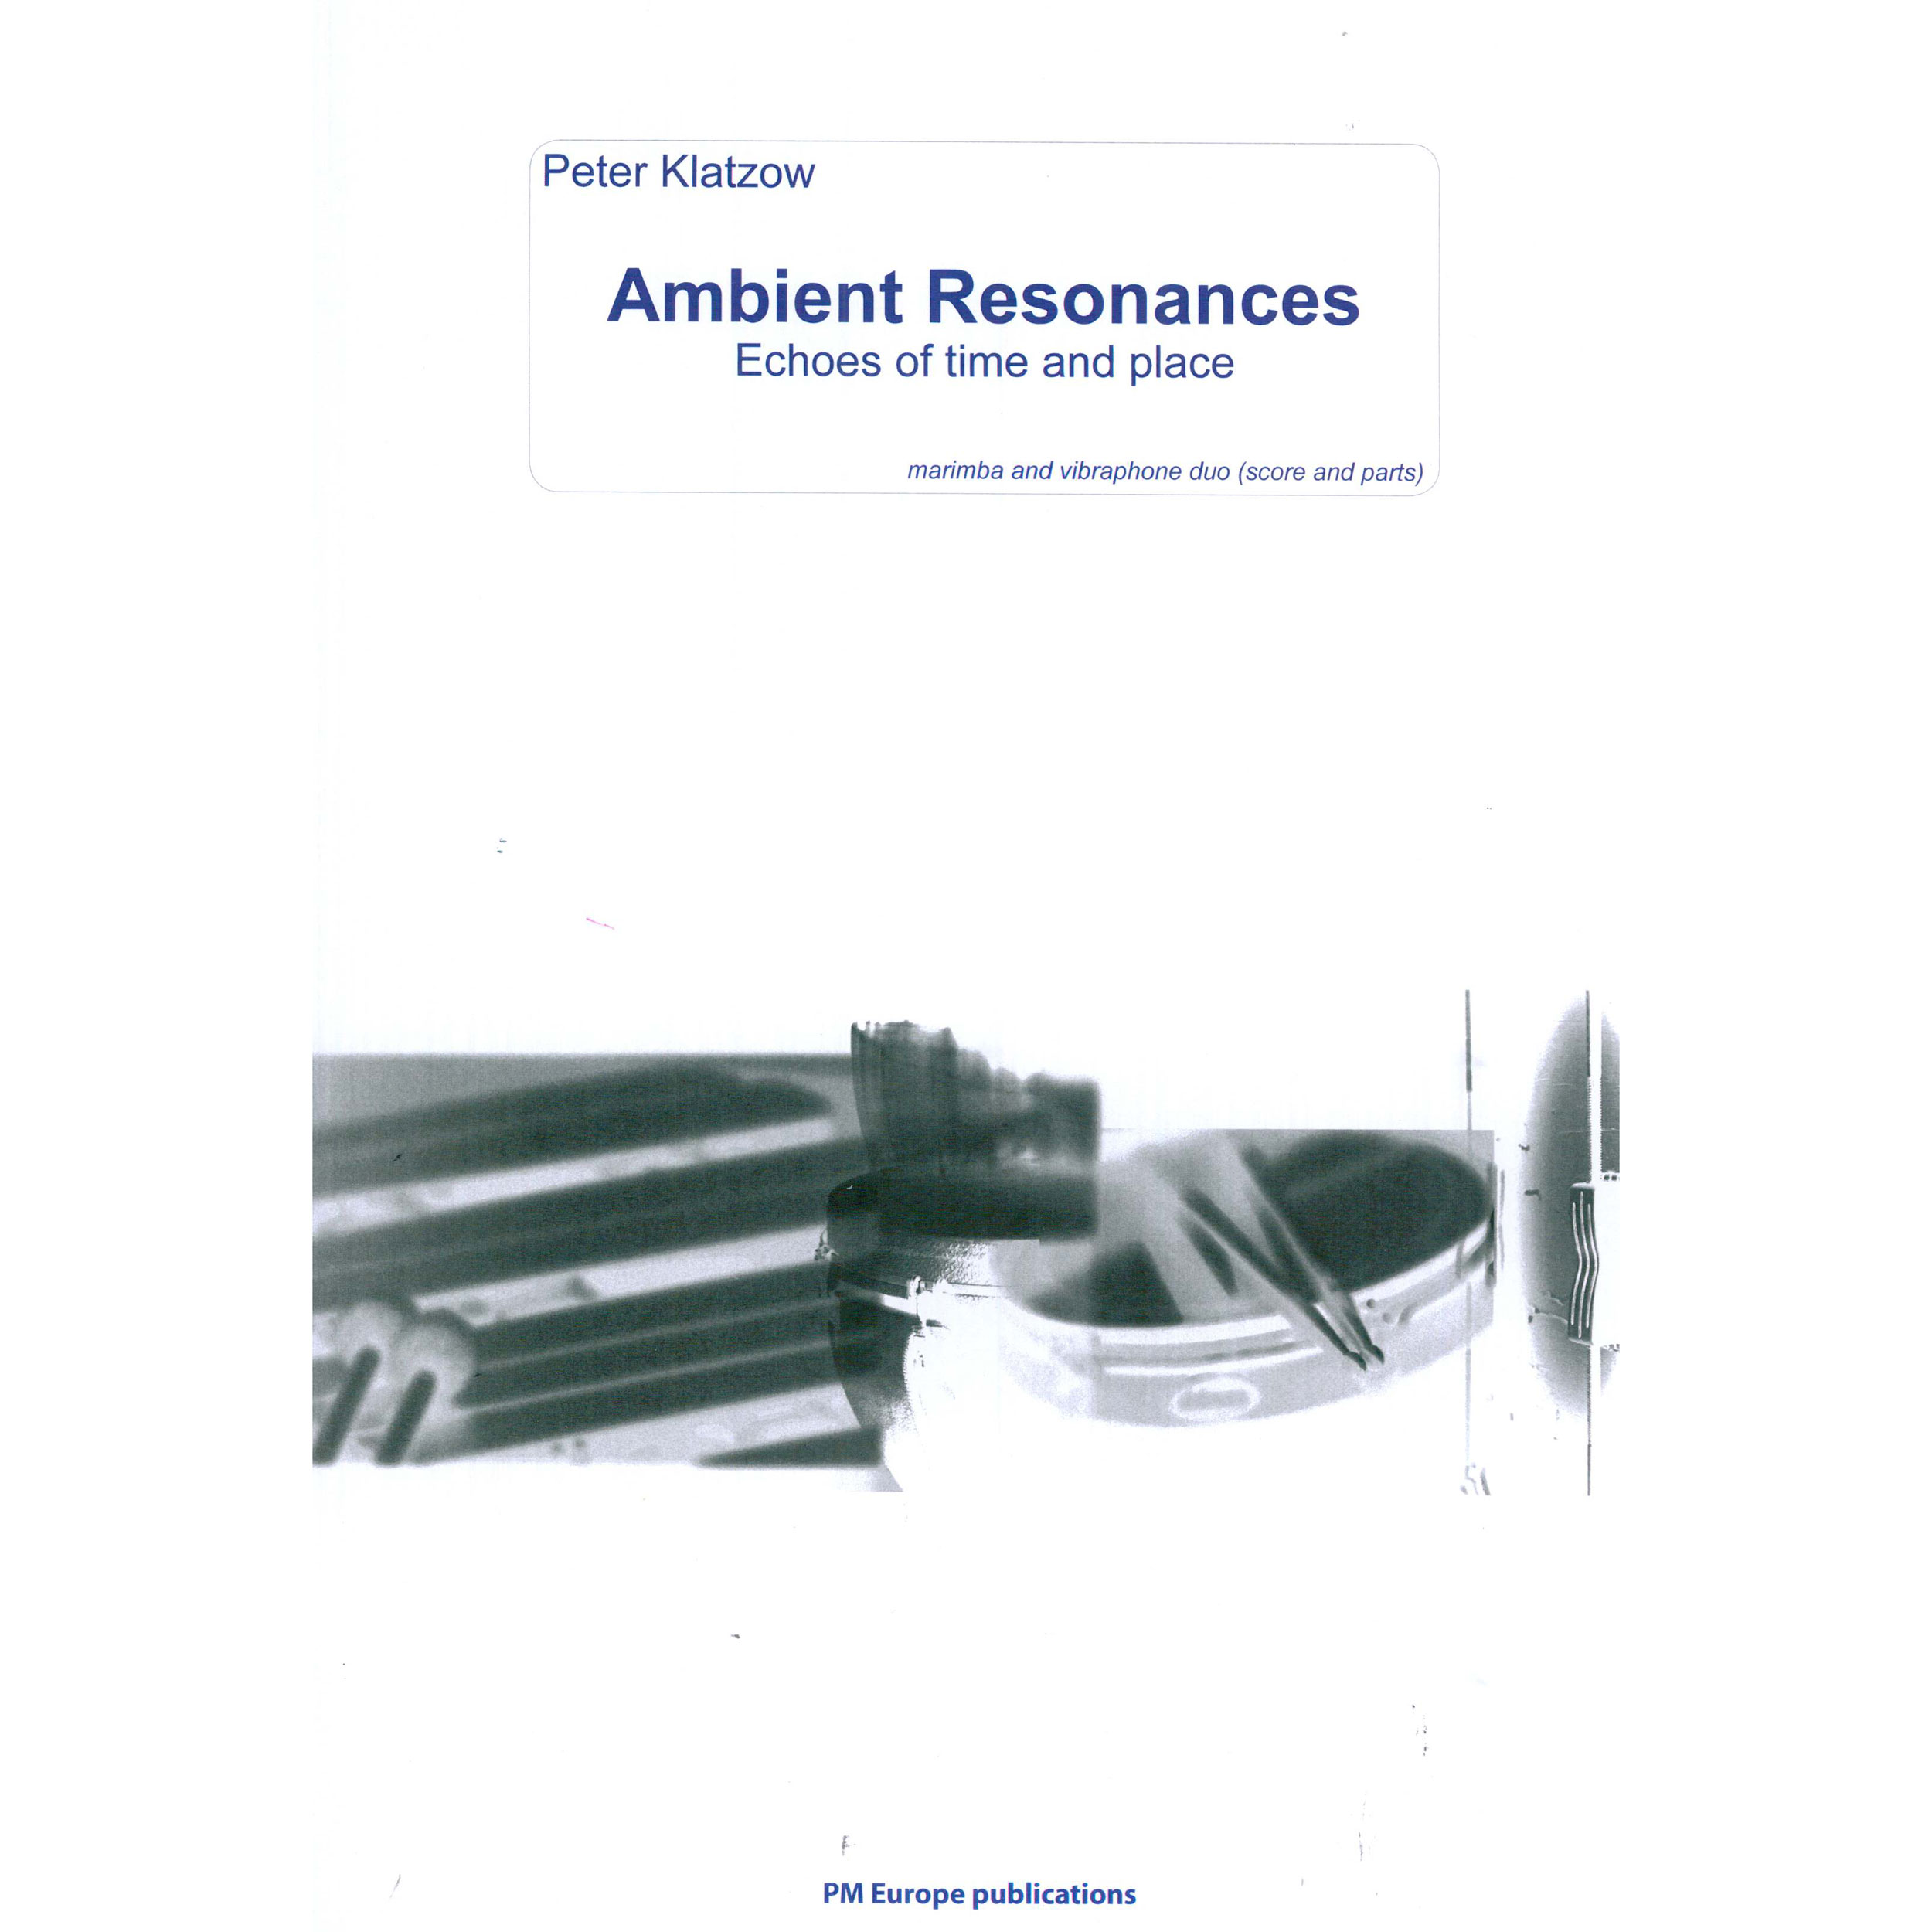 Ambient Resonances (Echoes of Time and Place) by Peter Klatzow